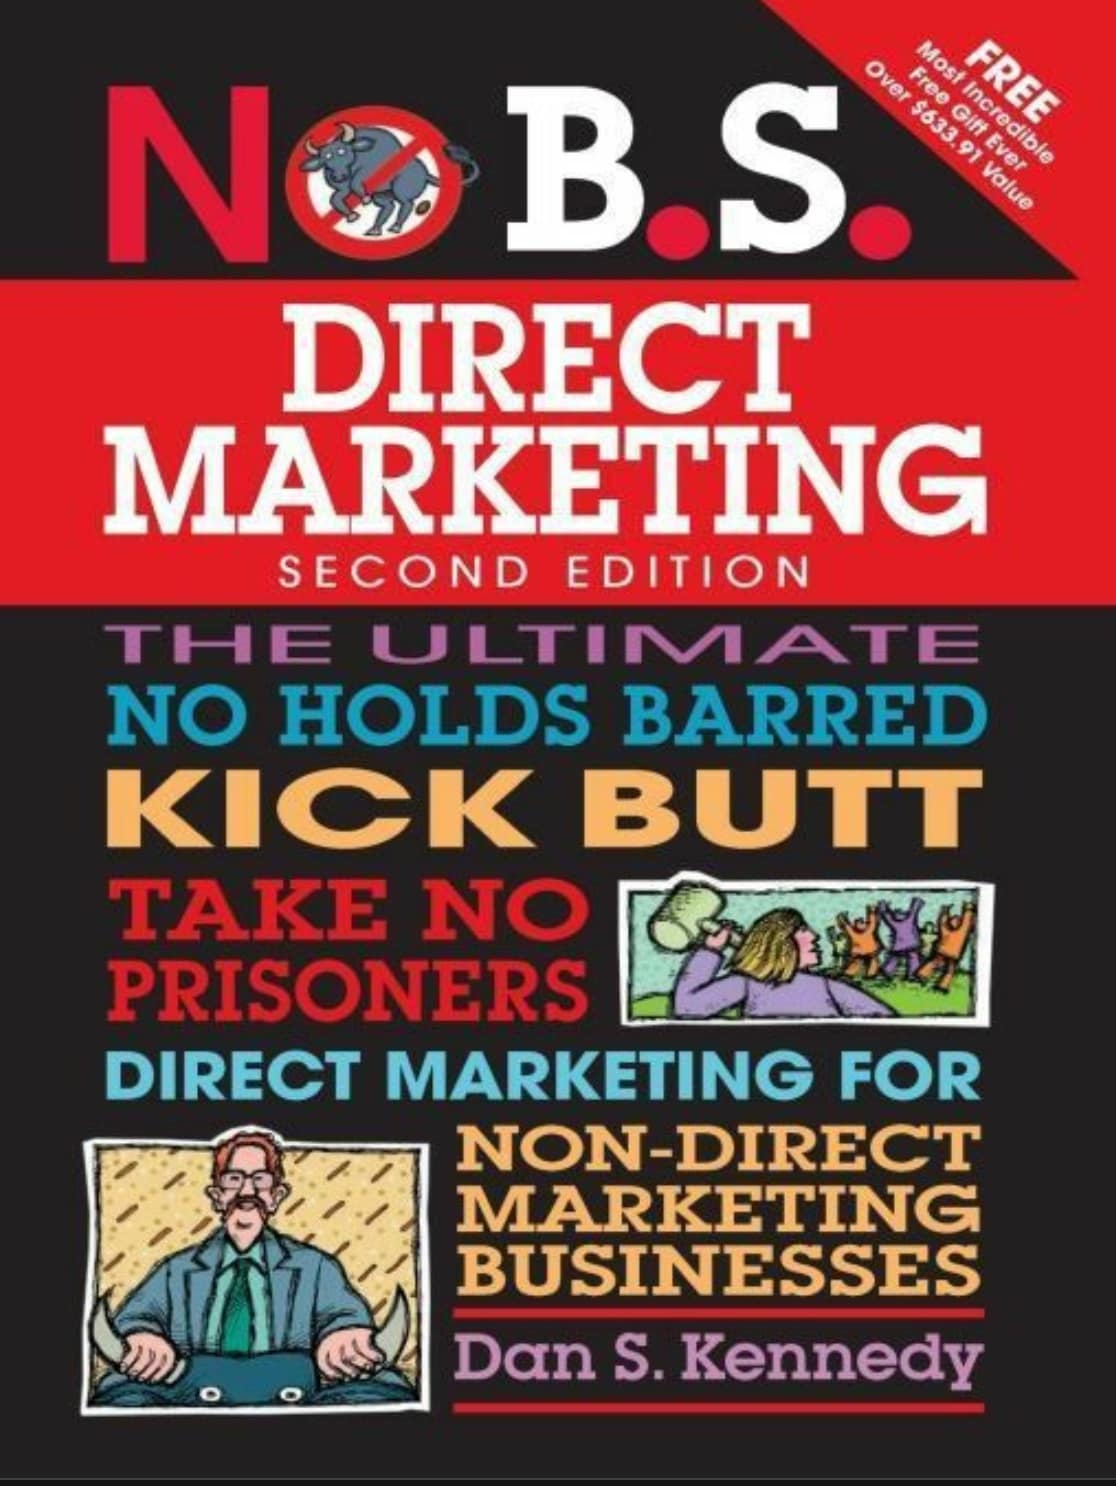 No BS Direct Marketing by Dan Kennedy: Summary and Notes